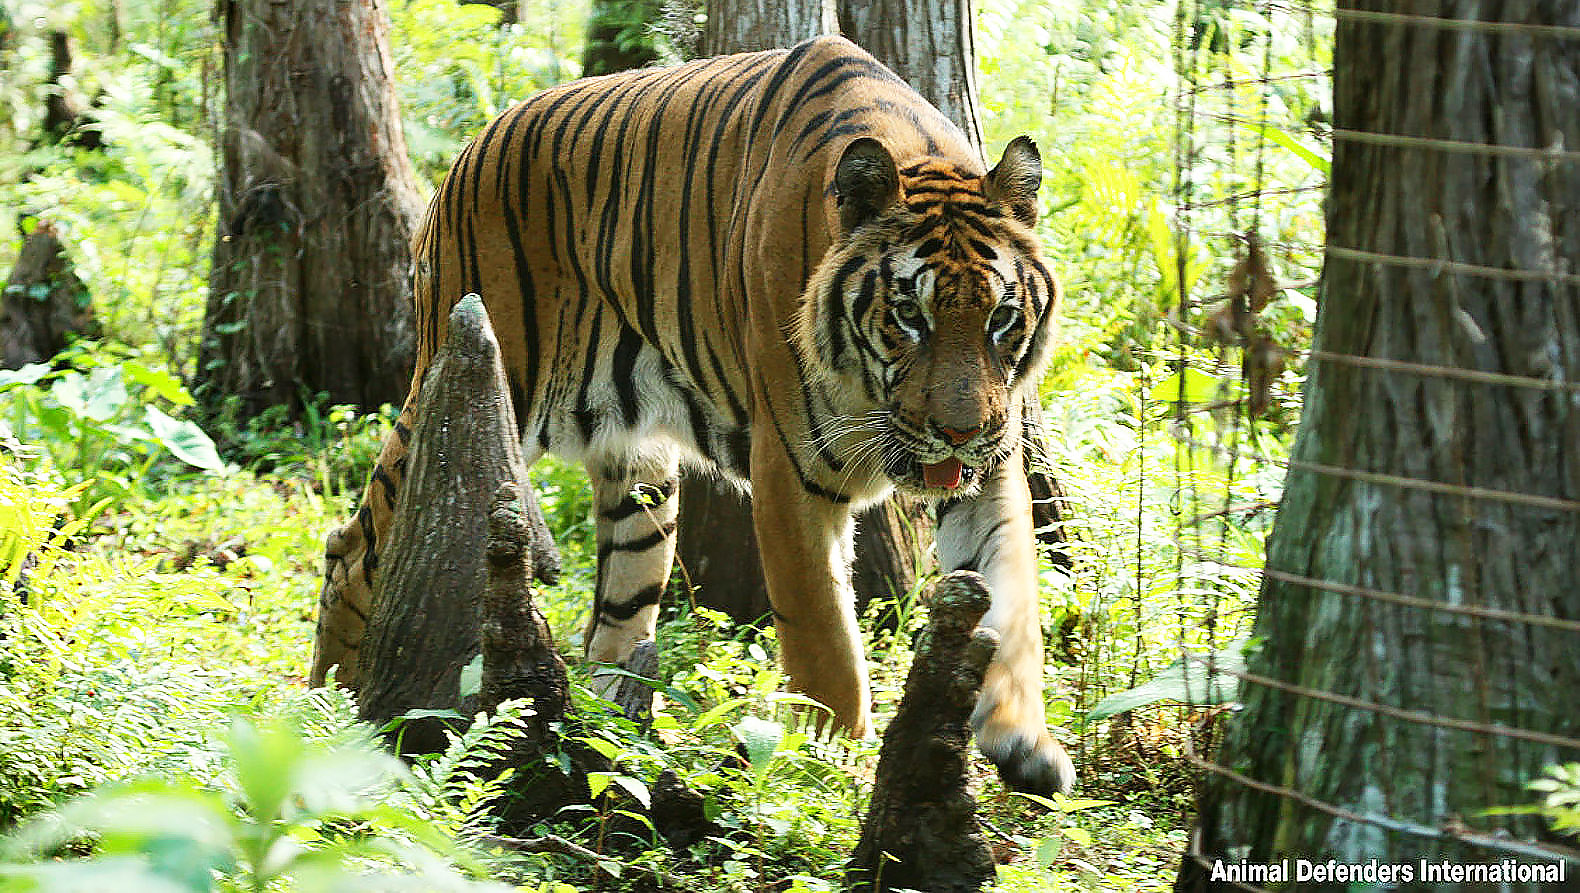 Watch Hoover the tiger released into nature after 12 dreadful years in a circus cage